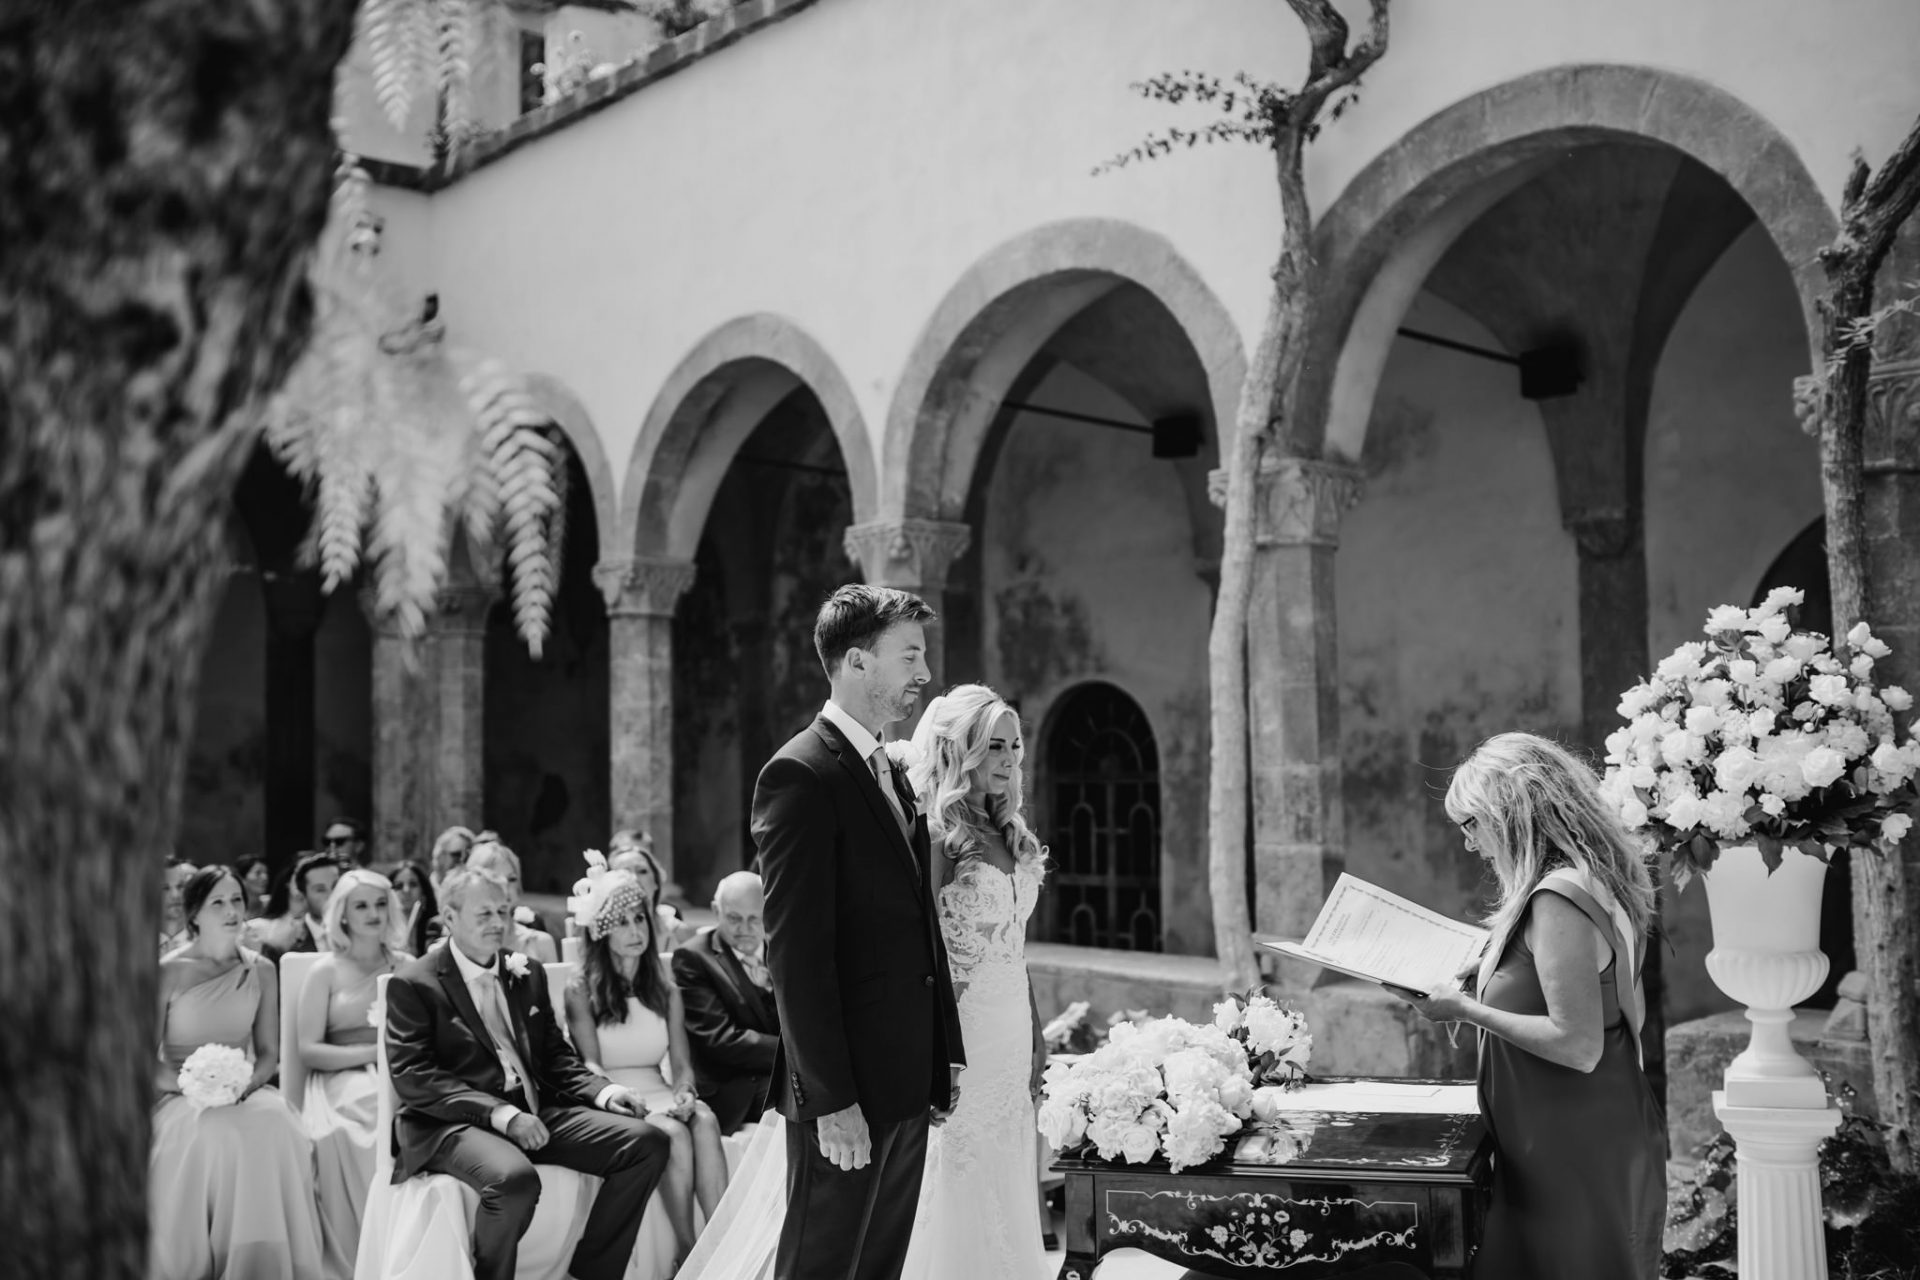 bride and groom getting married wedding ceremony sorrento cloisters chiostro di san francesco